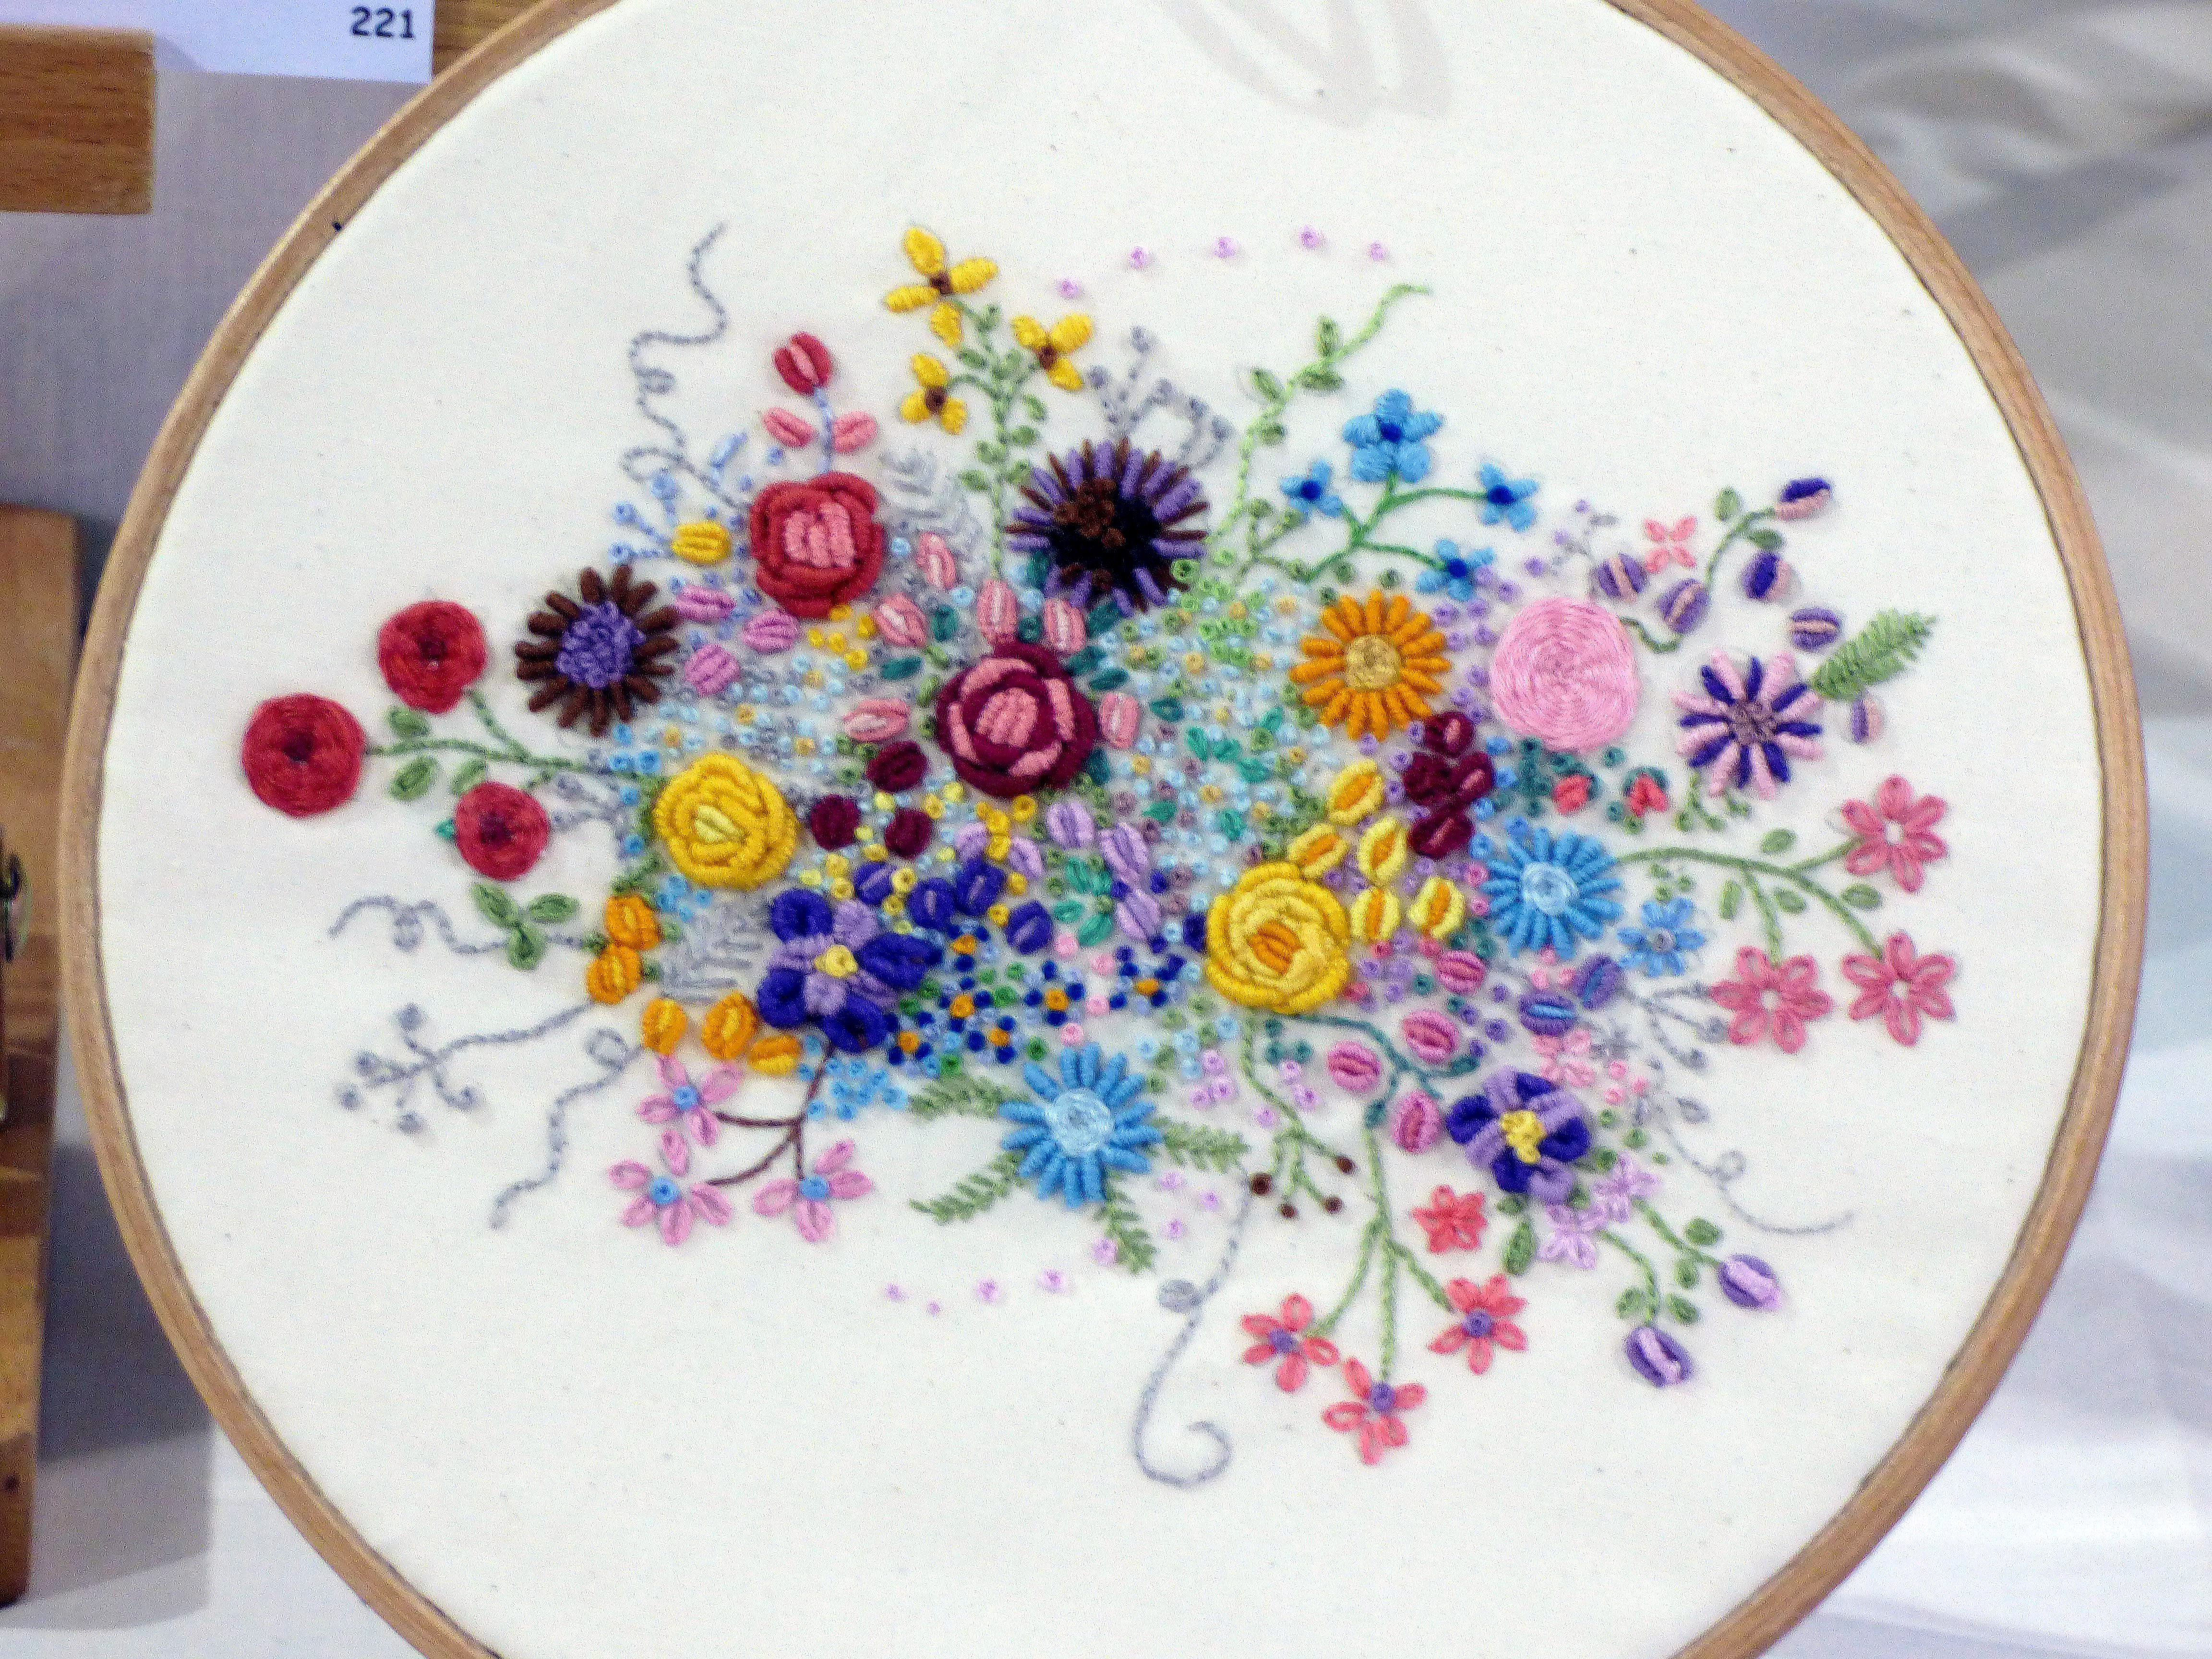 ROUND THE GARDEN by Beryl Stafford, N.Wales EG, hand embroidery